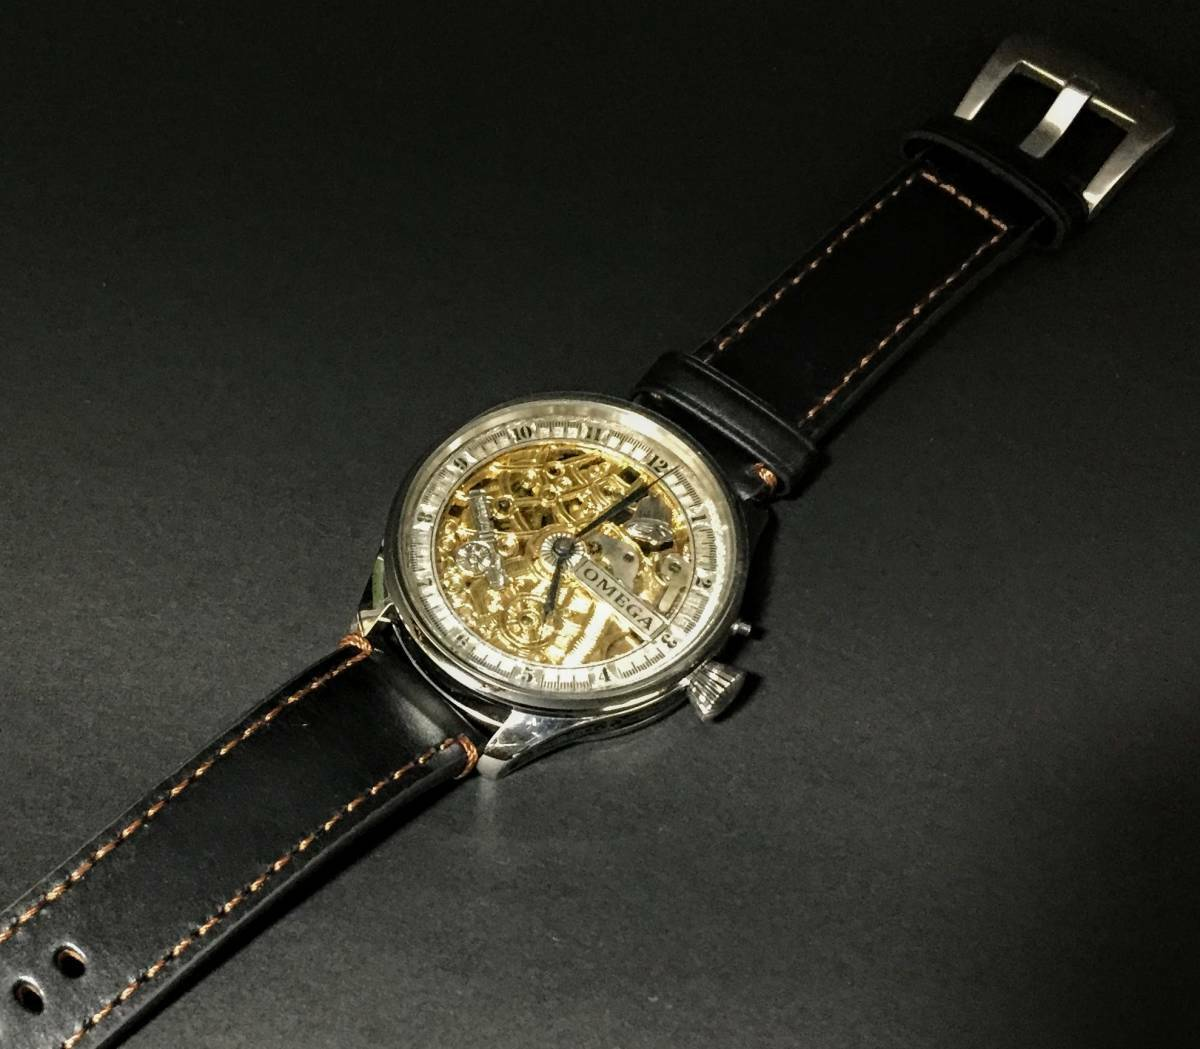 Heart on the 1897 Omega / one product / full skeleton / manual winding watch /